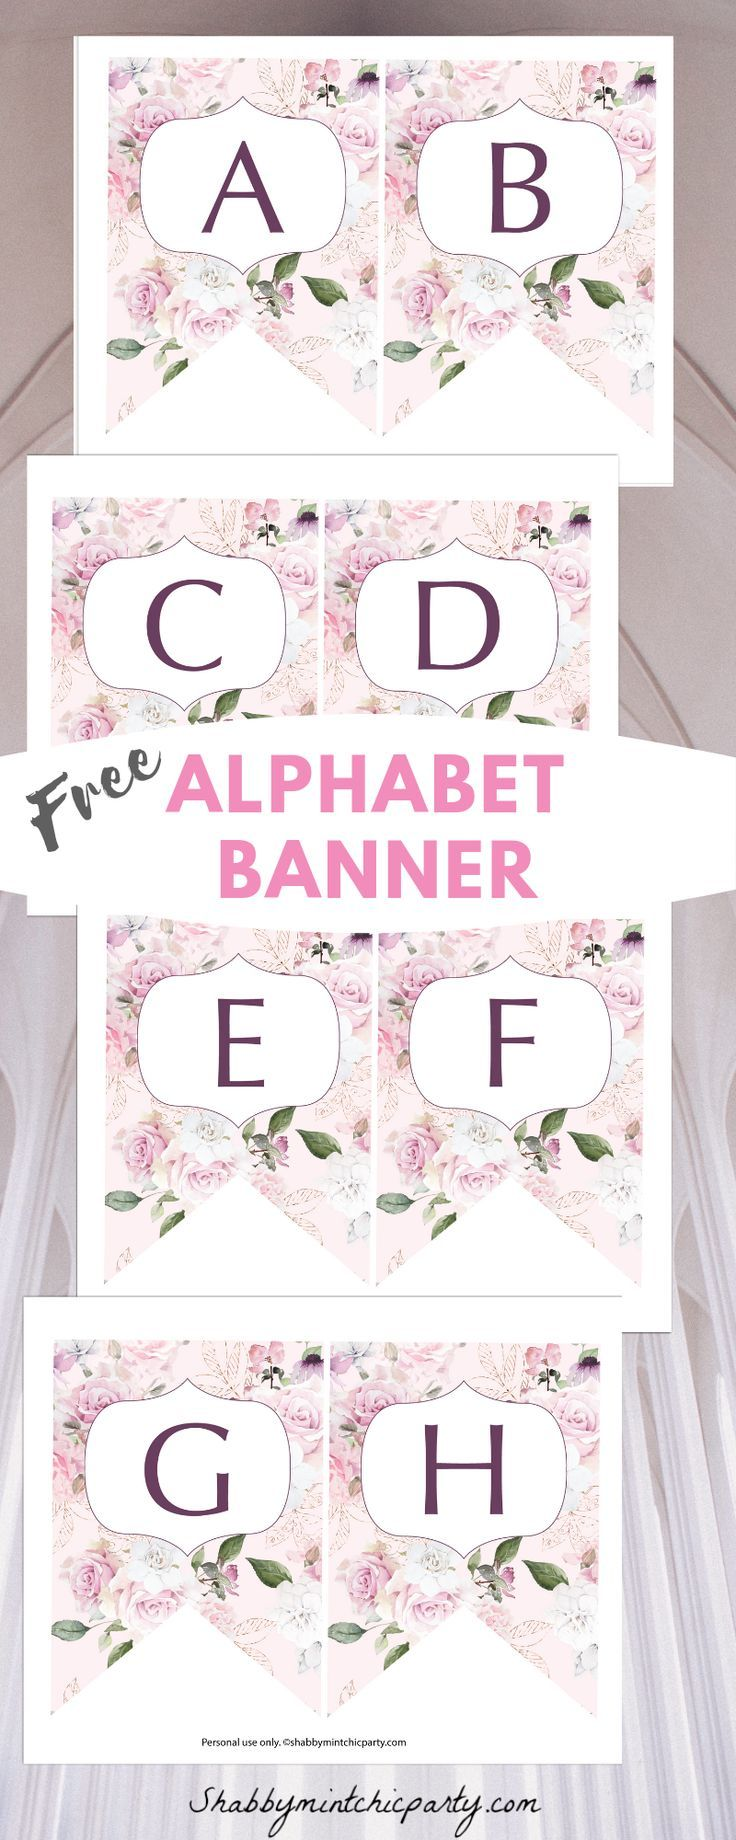 Free Printable Rose Alphabet Banner Shabby Mint Chic Party Baby Name Banners Free Printable Banner Diy Banner